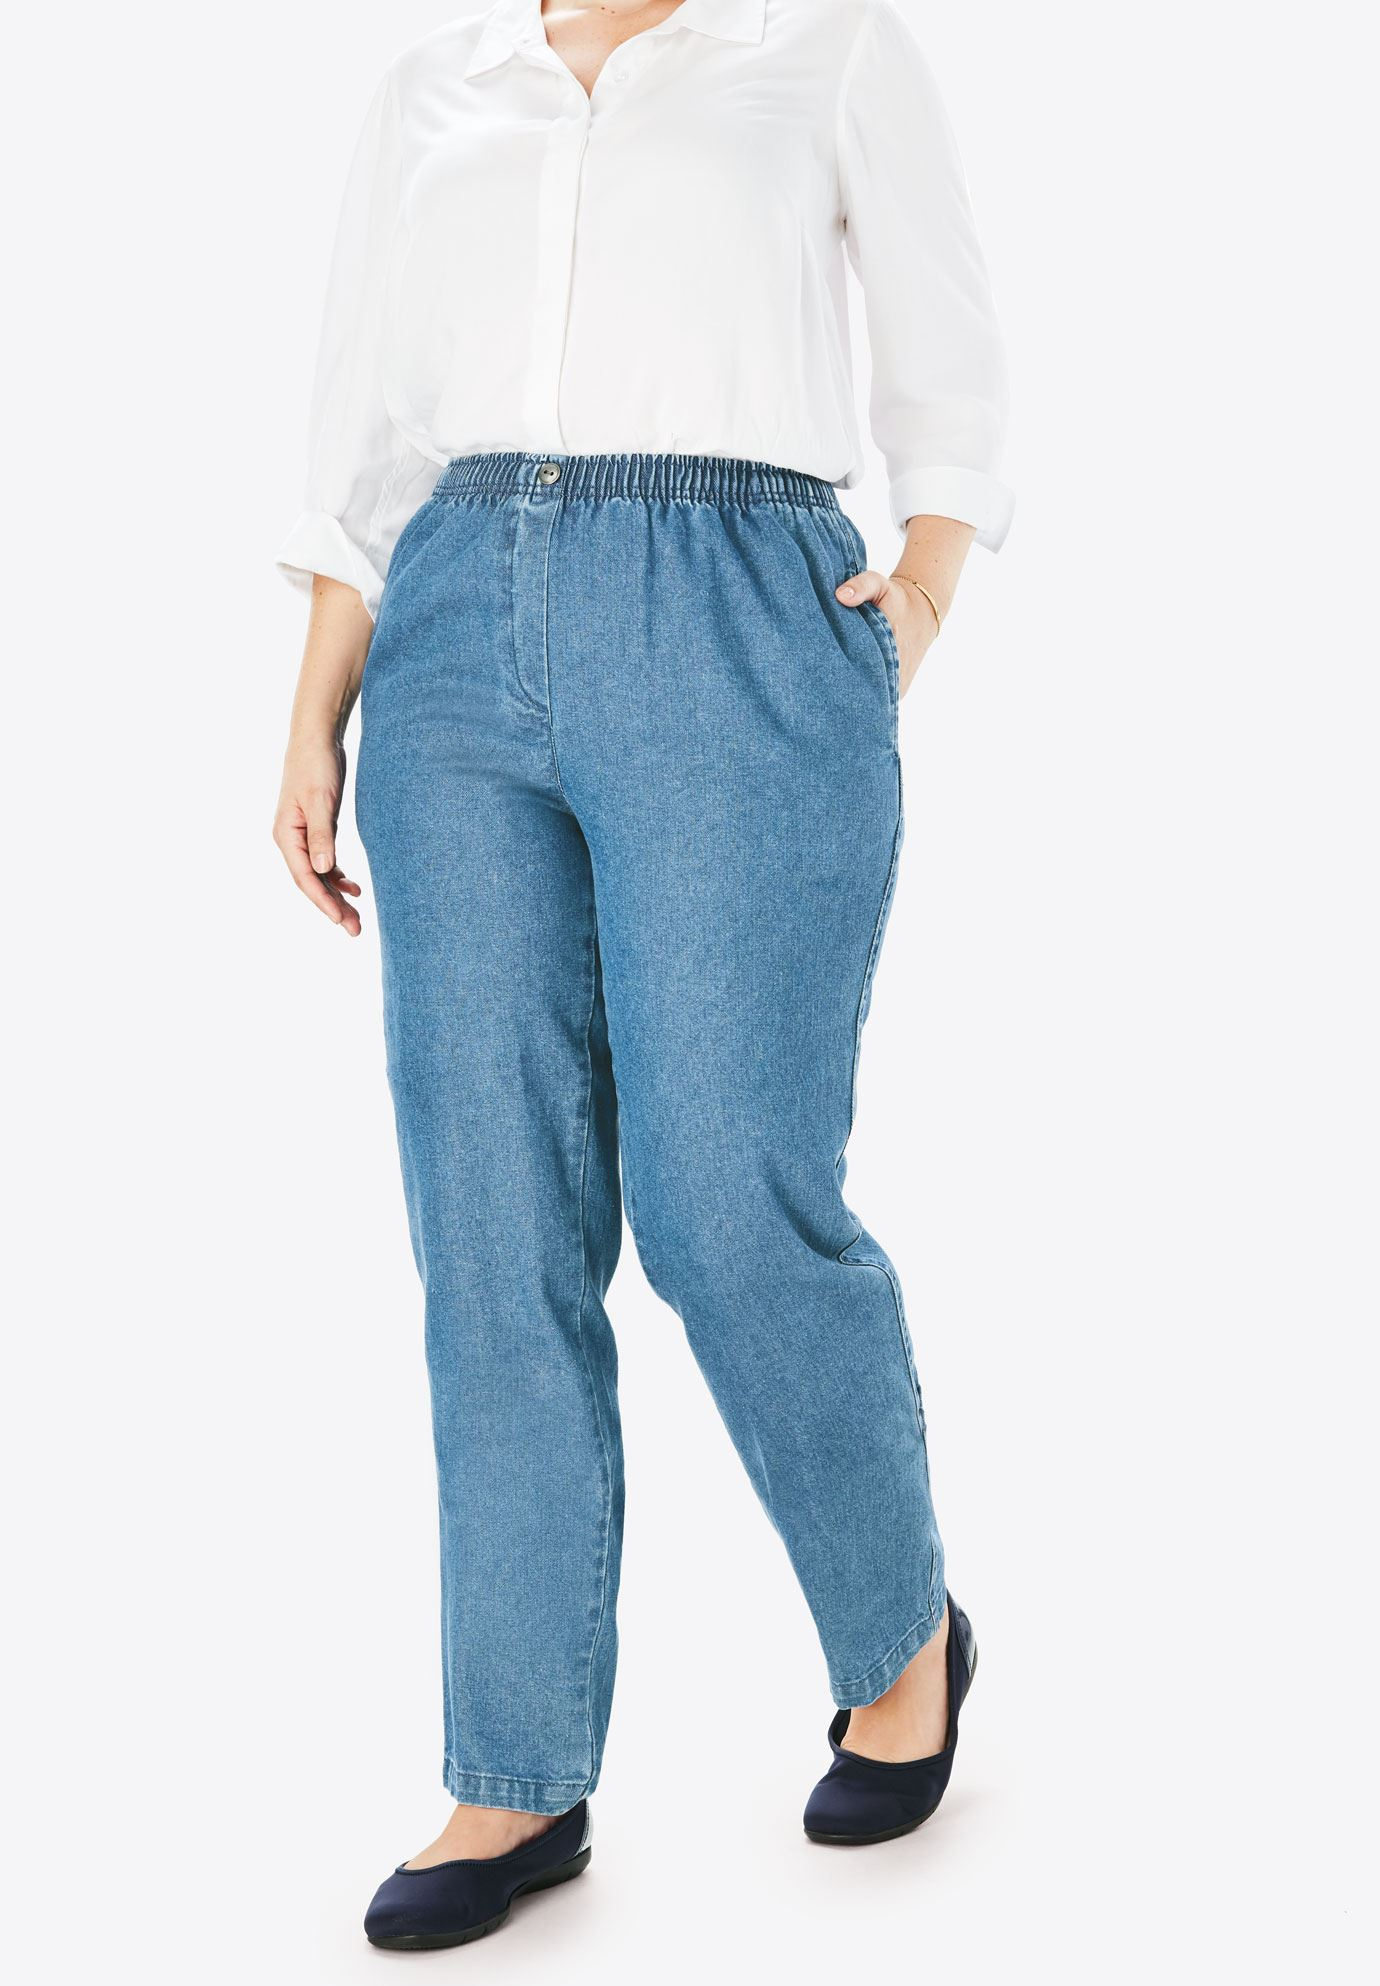 100% Cotton Comfort Pull On Jean, , hi-res